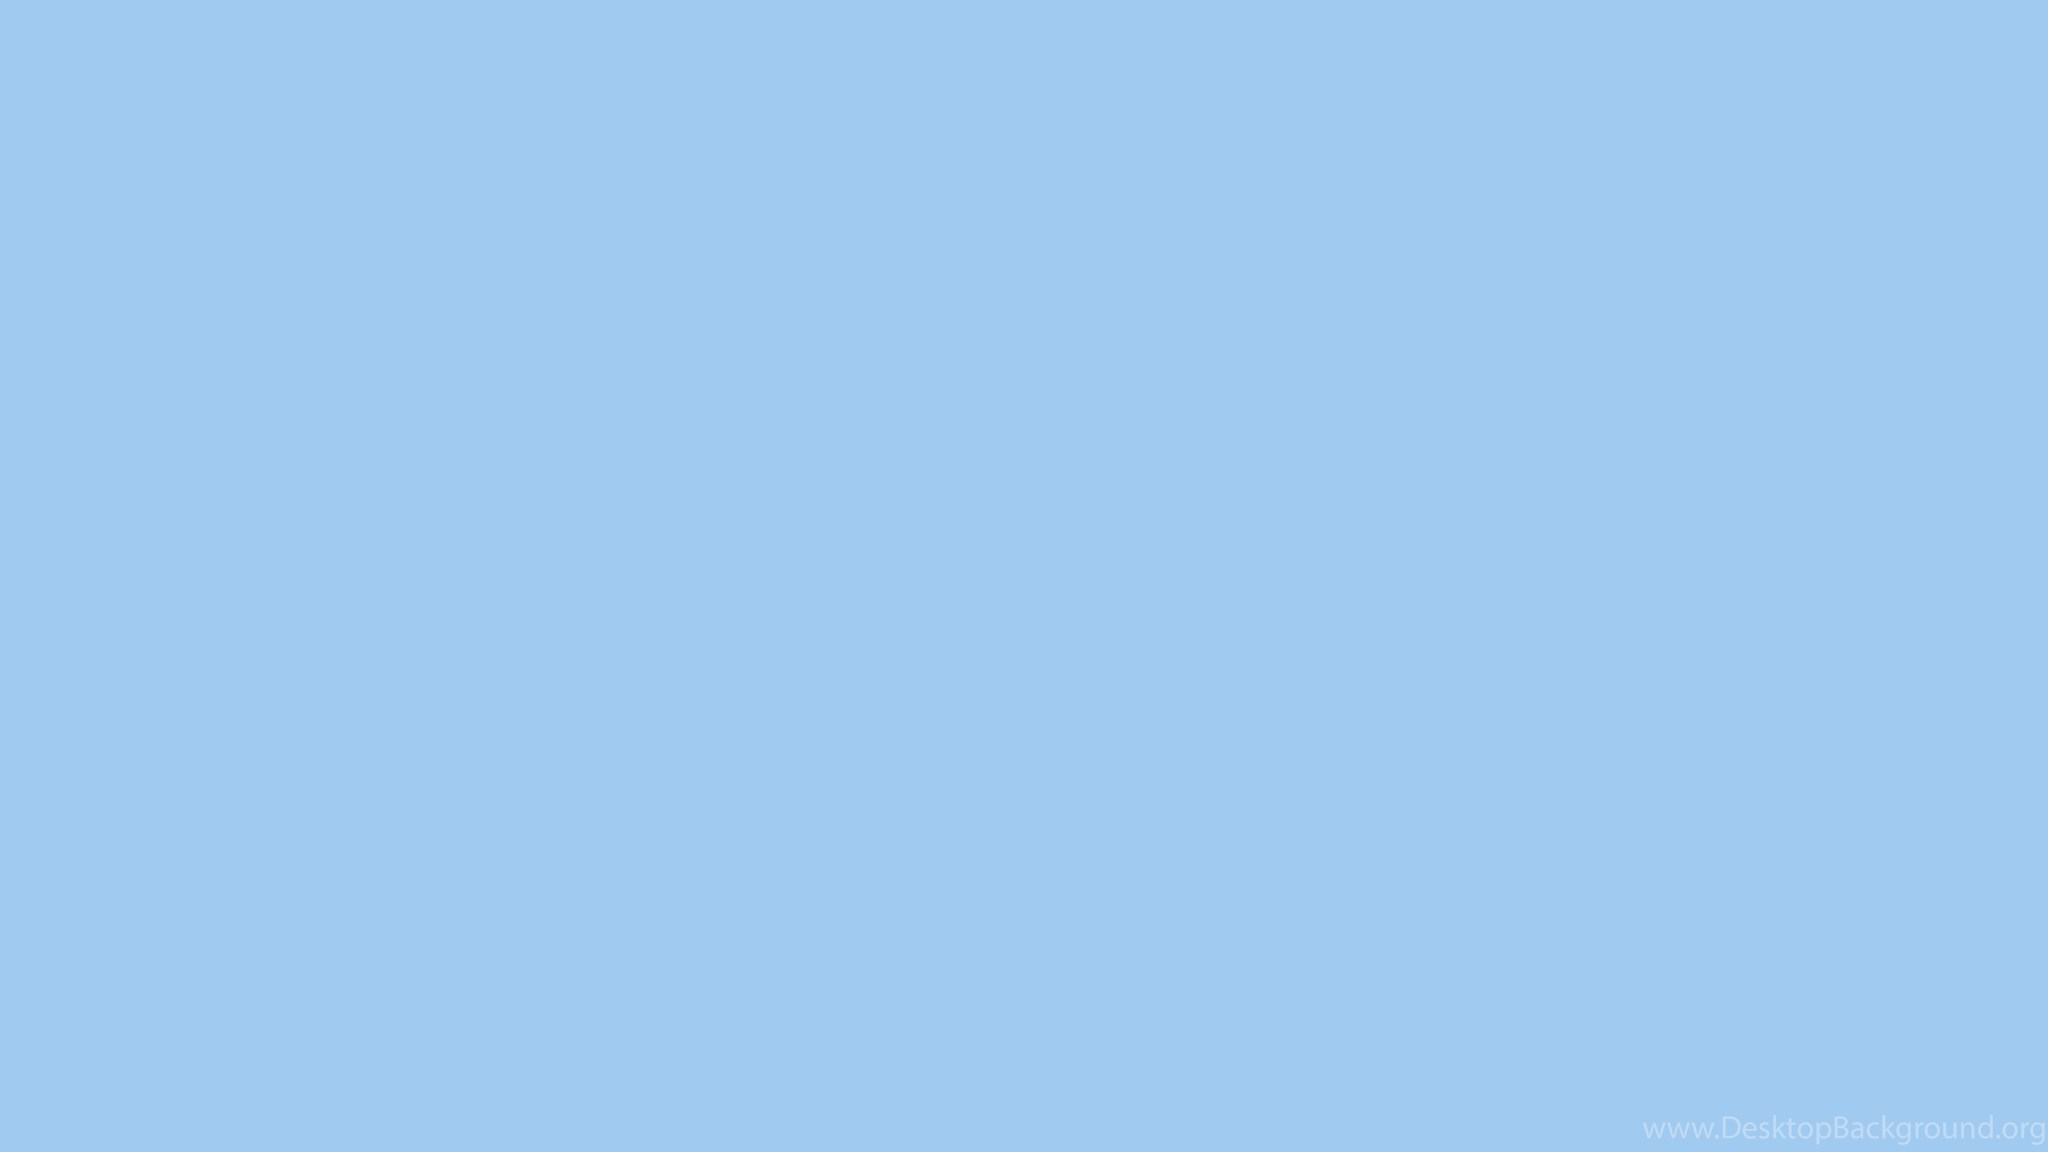 989750 2048x2048 Baby Blue Eyes Solid Color Backgrounds